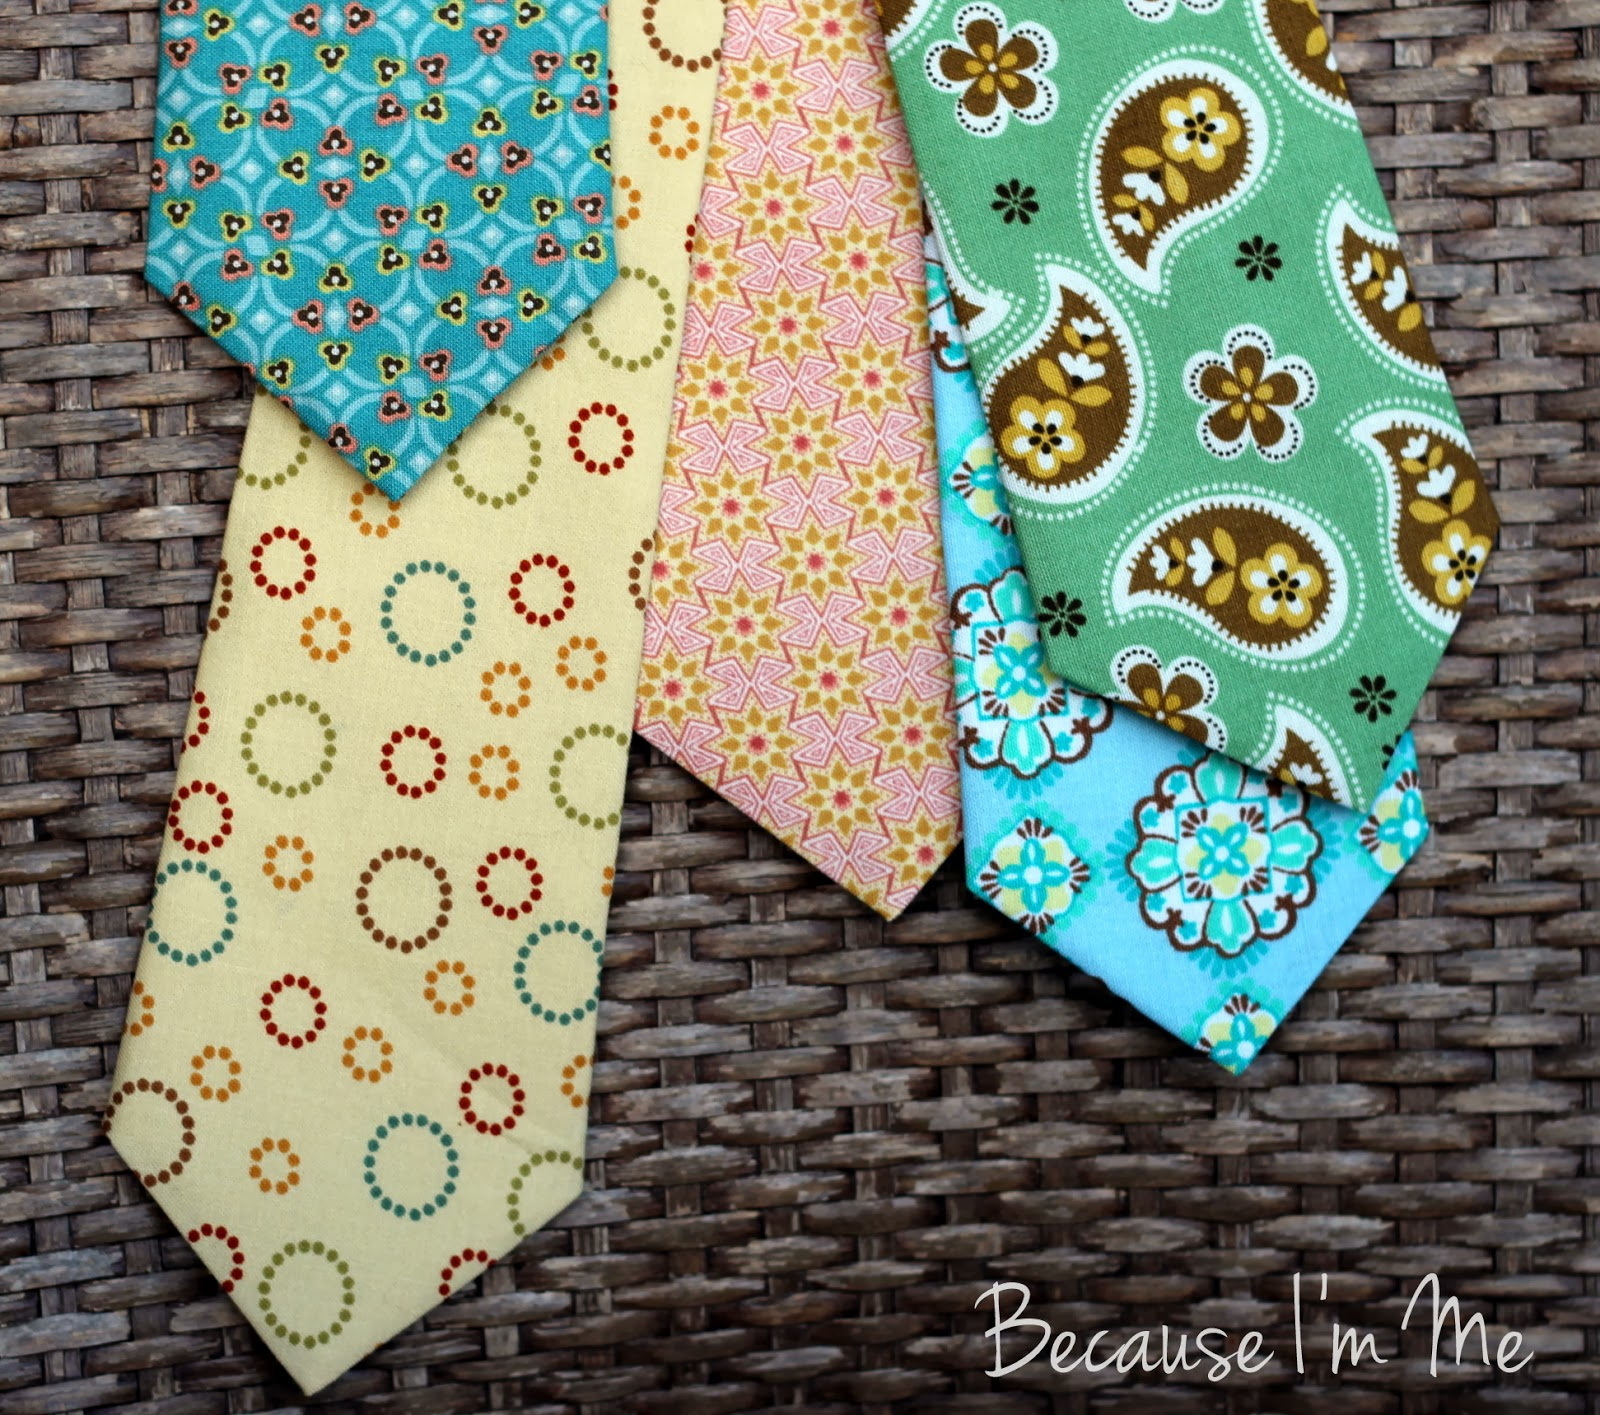 Because I'm Me mens, boys, and infants neckties